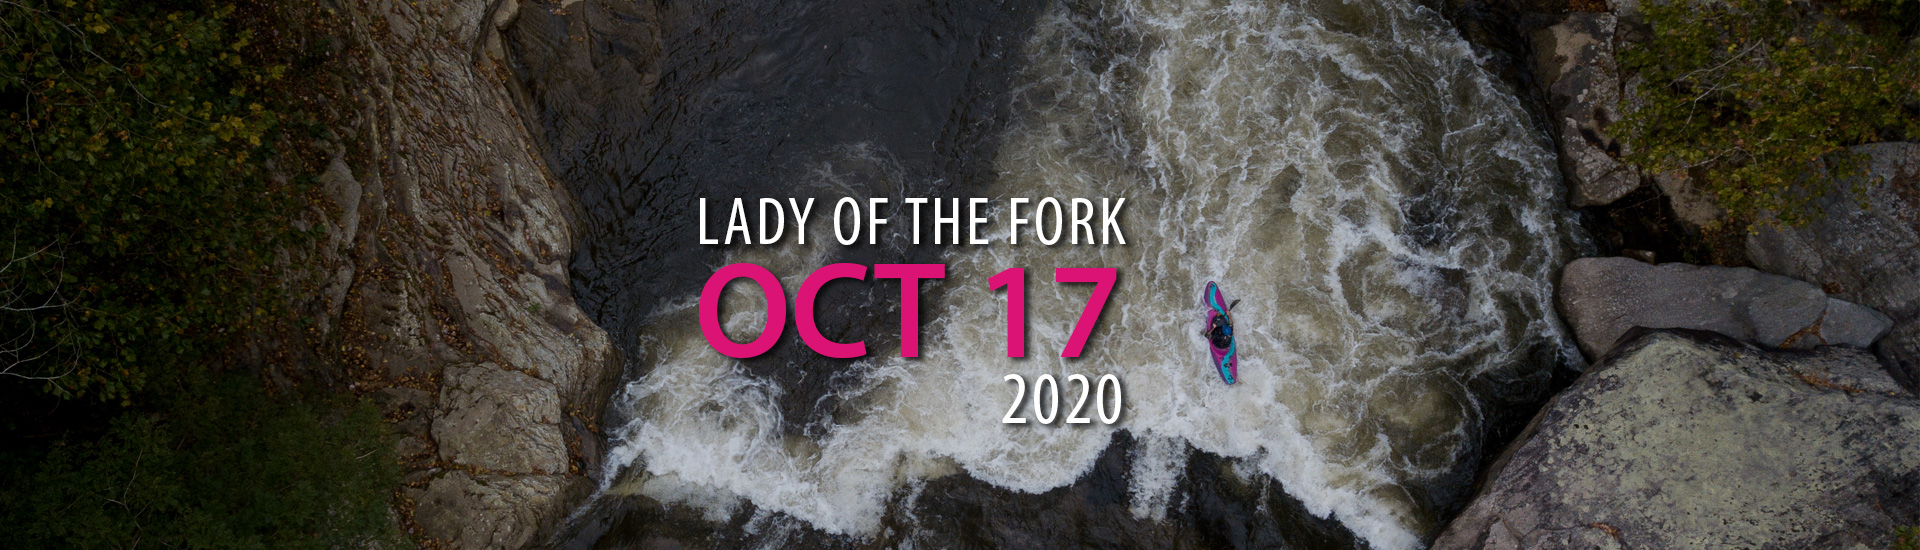 lady of the fork - confidence series